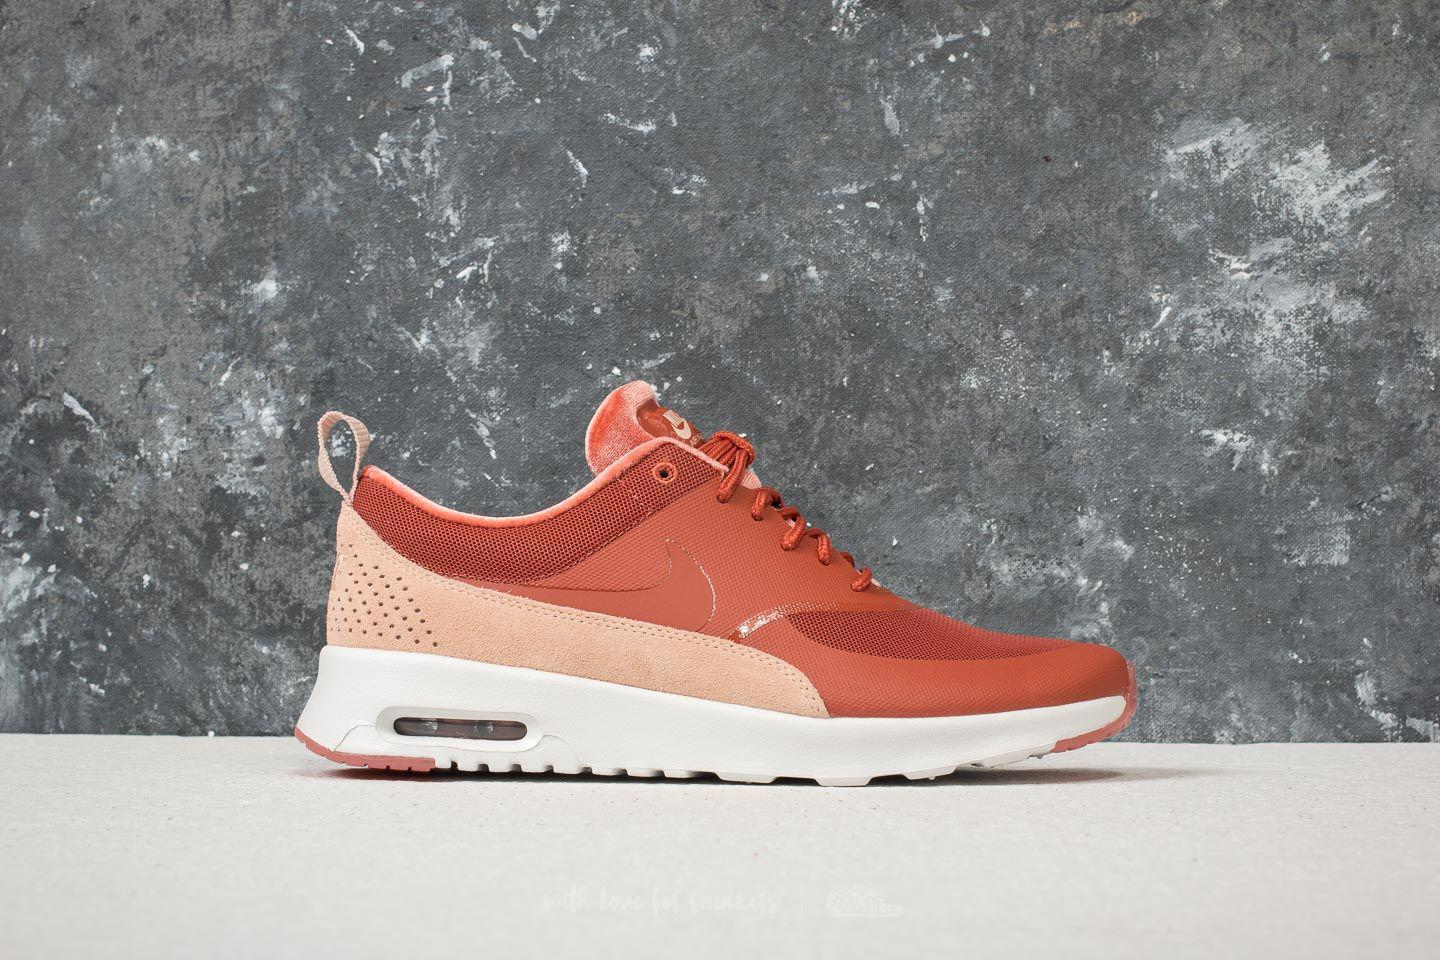 5d08cc9a4f Gallery. Previously sold at: Footshop · Women's Nike Air Max